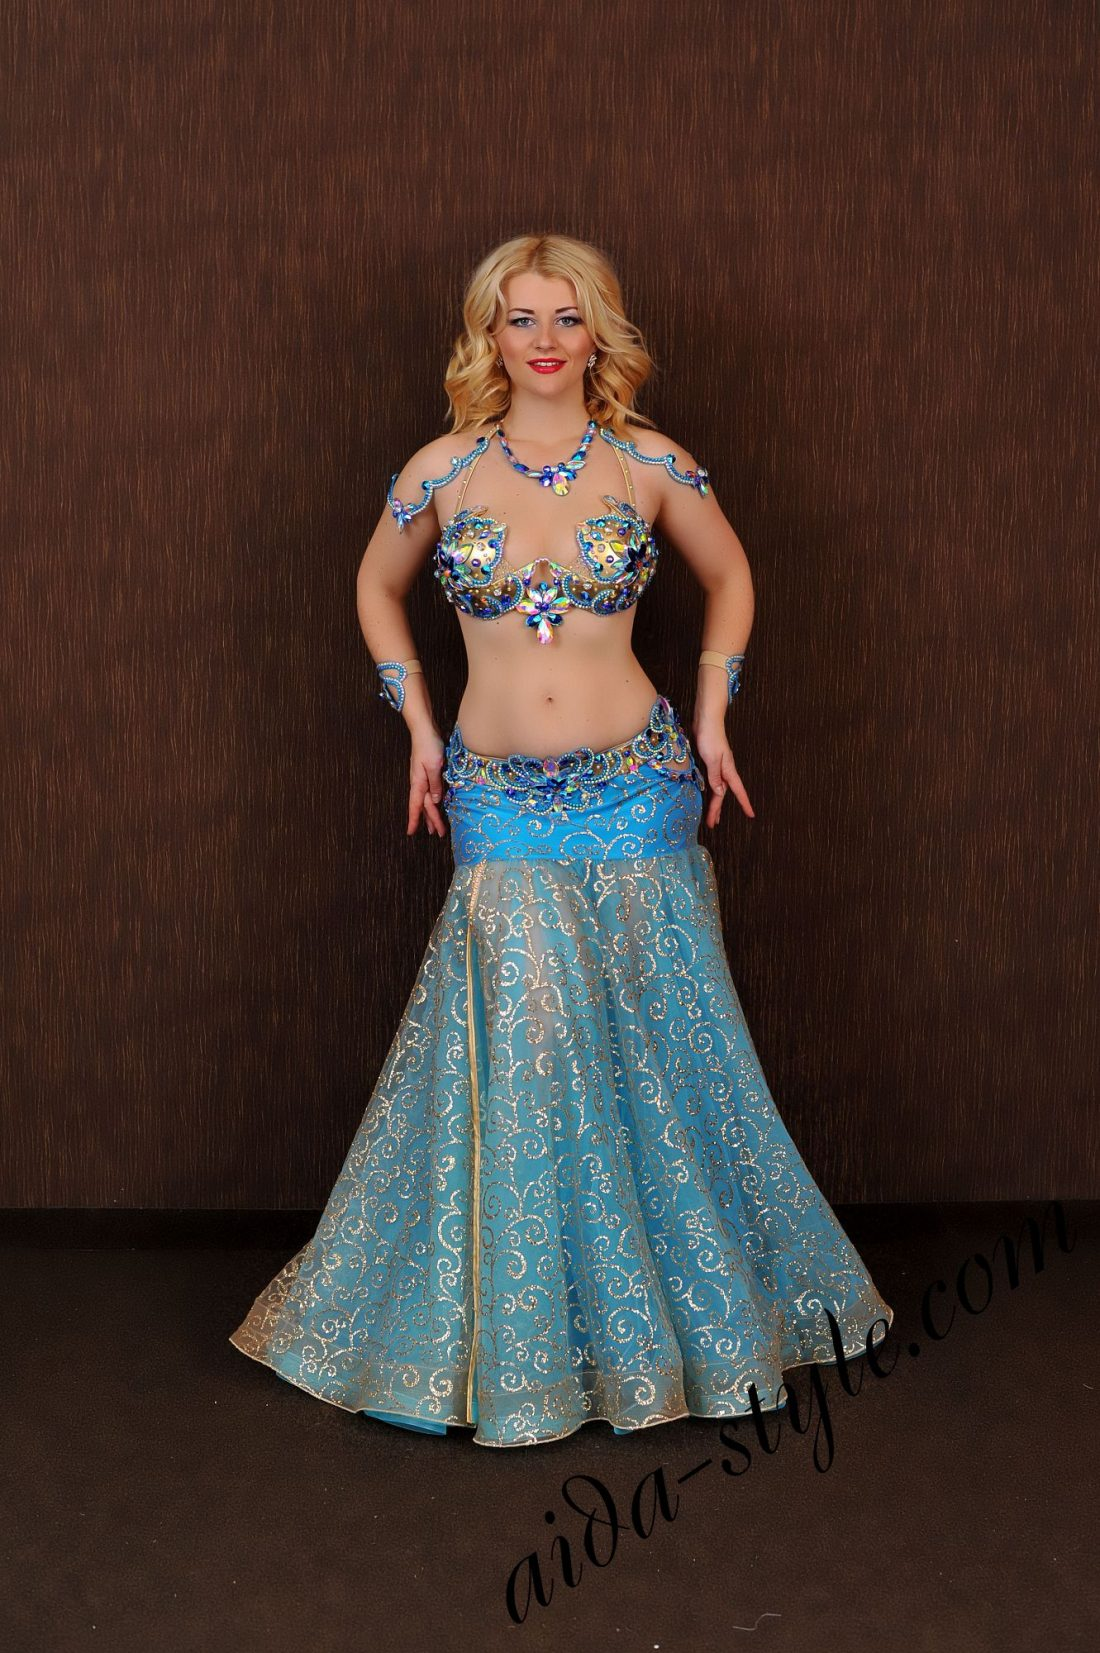 blue belly dance costume design by aida style (6) with golden shining fabric, separate belt, wide bouffant skirt